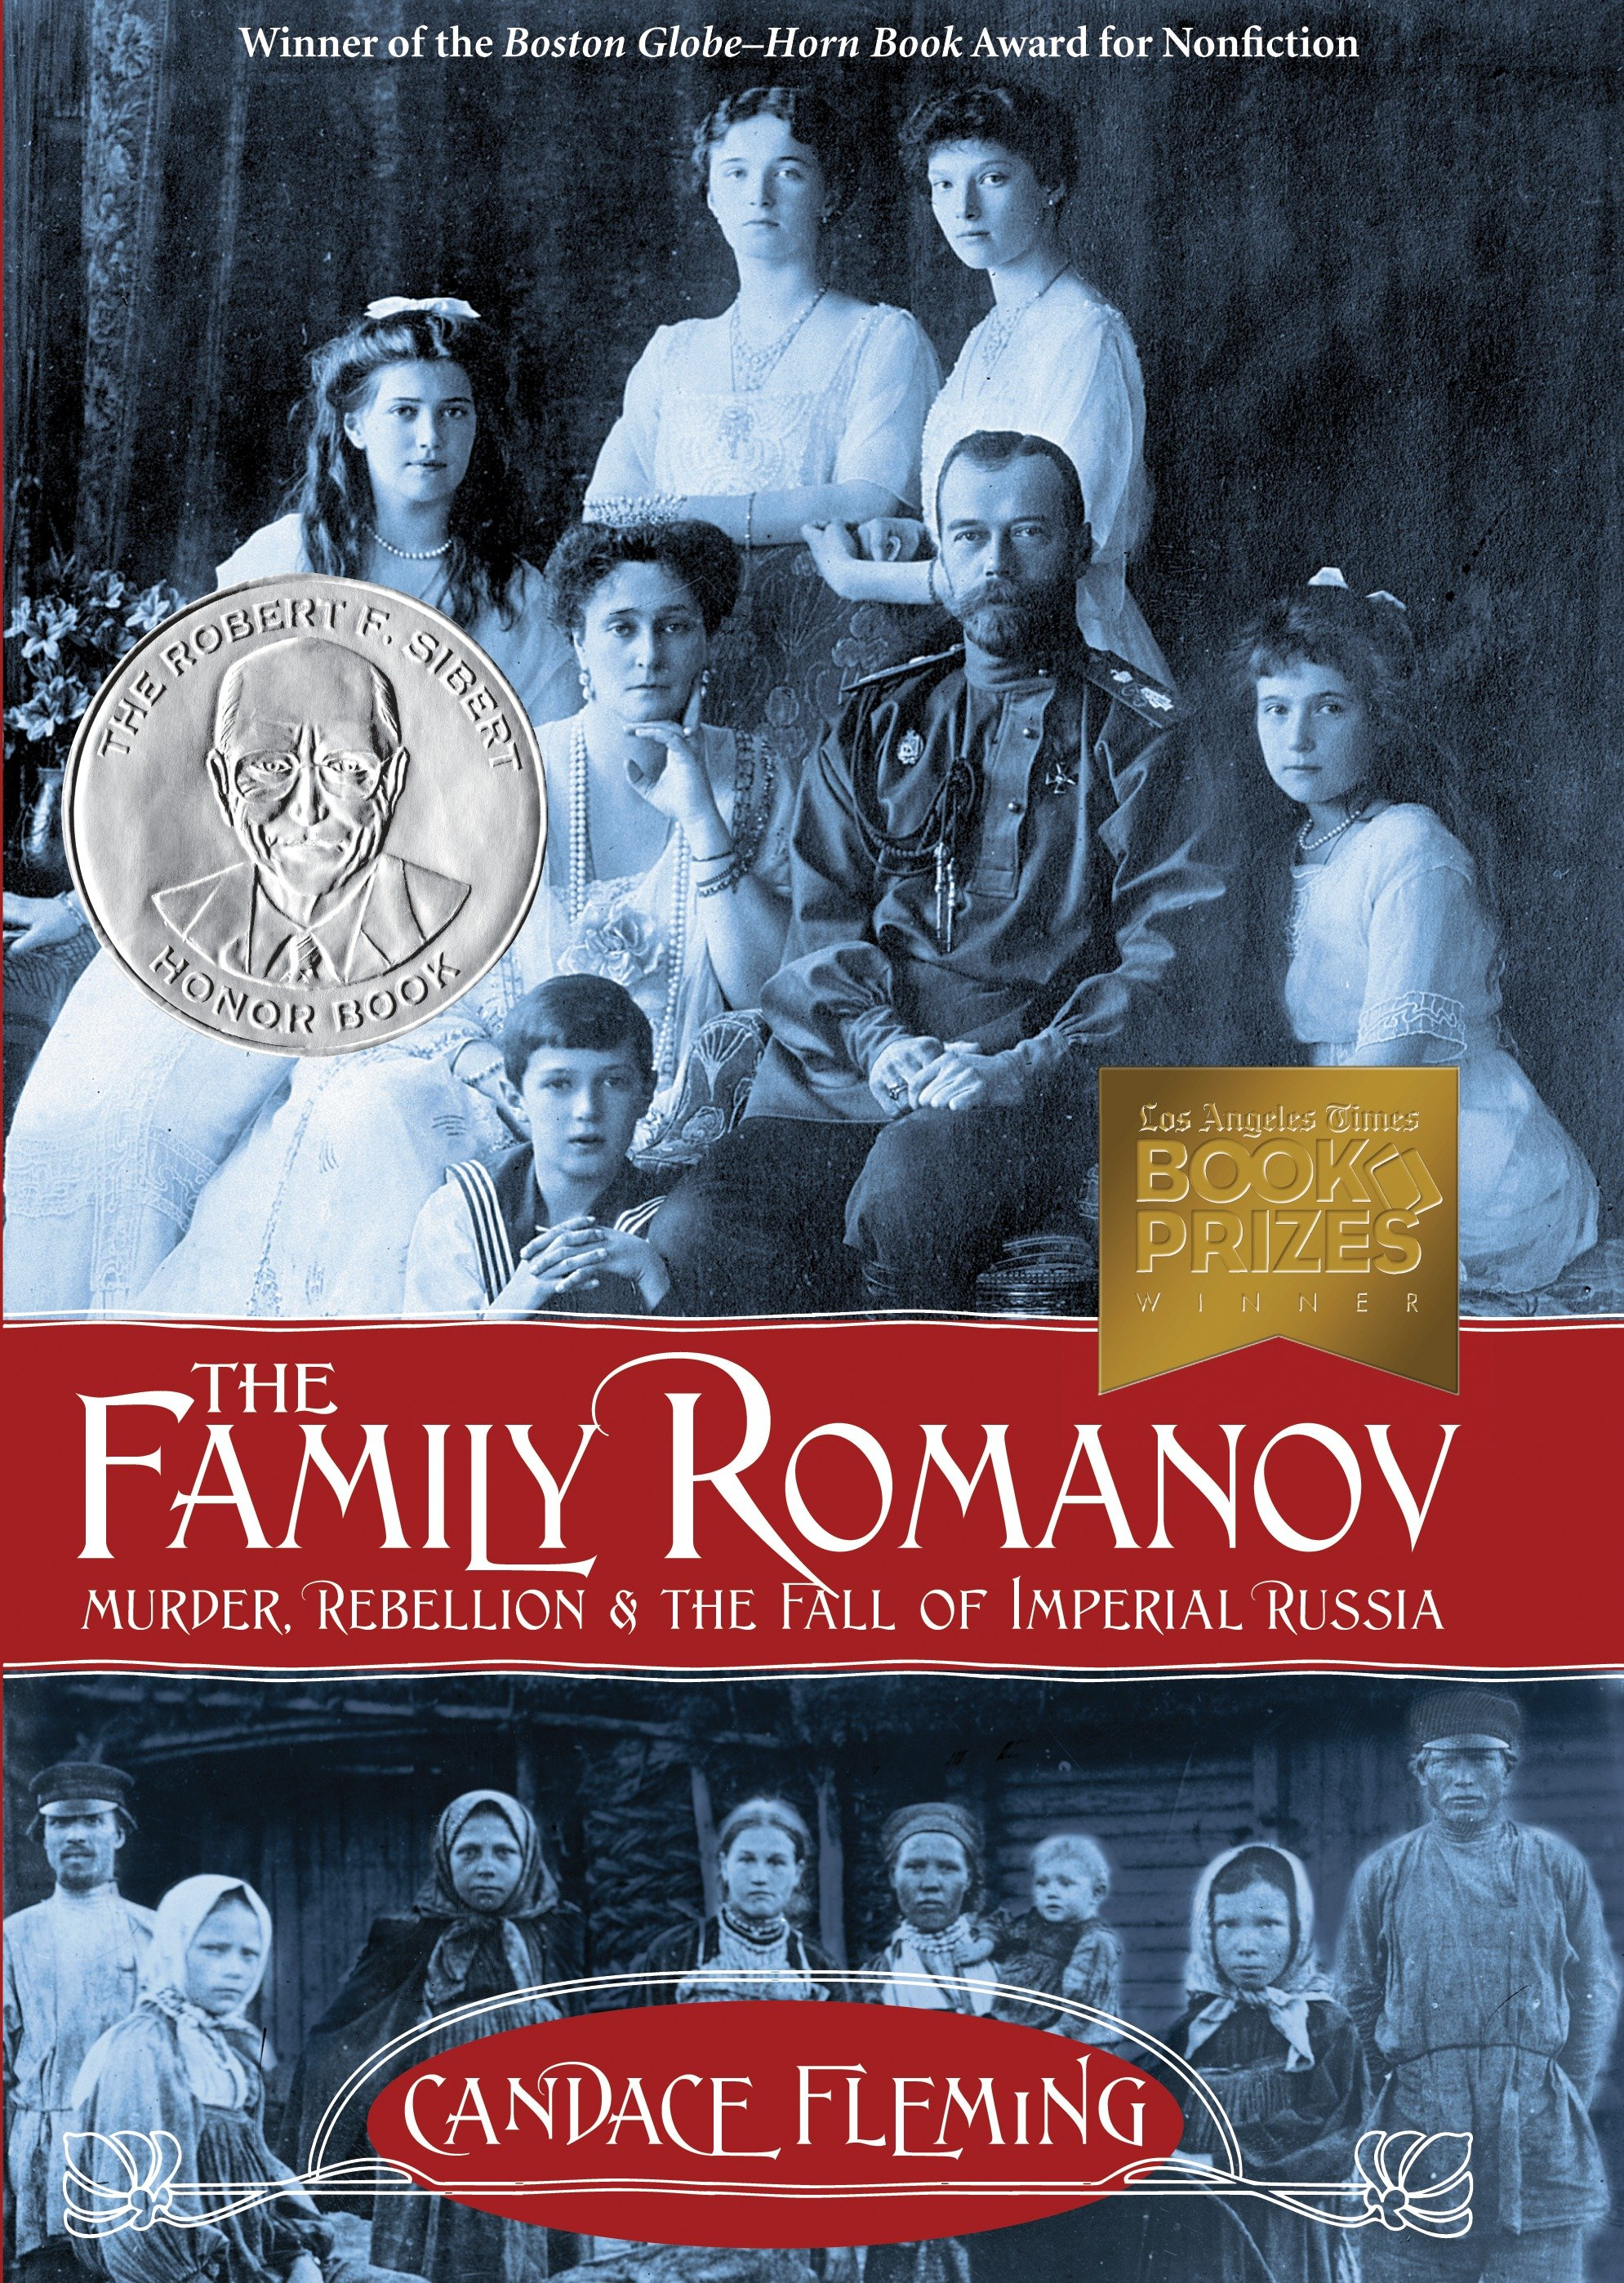 The Family Romanov: Murder, Rebellion, and the Fall of Imperial Russia